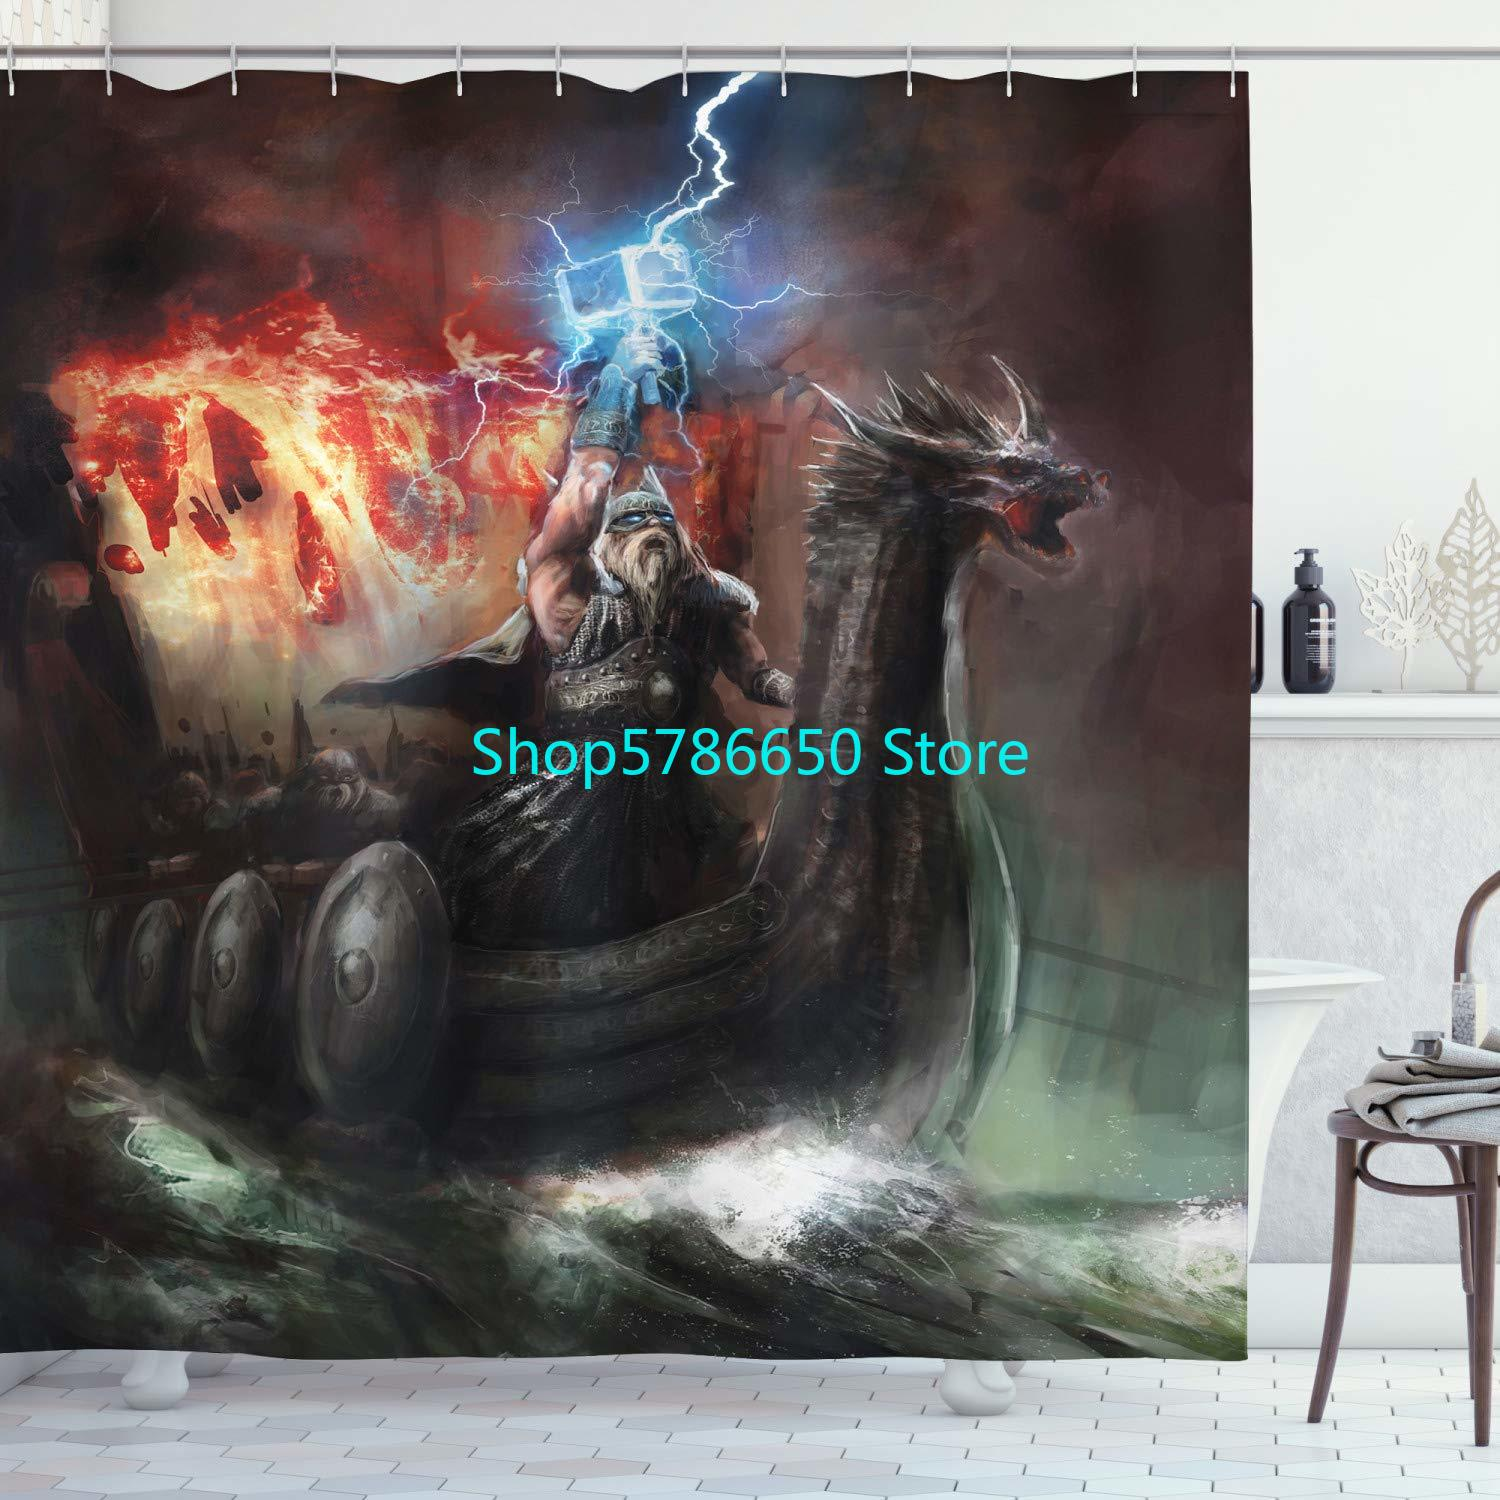 Shower Curtain Imaginary Wrath of Vikings Royal Boat with Dragon Head Storm Rays Cloth Fabric Bathroom Decor Set With 12 Hooks